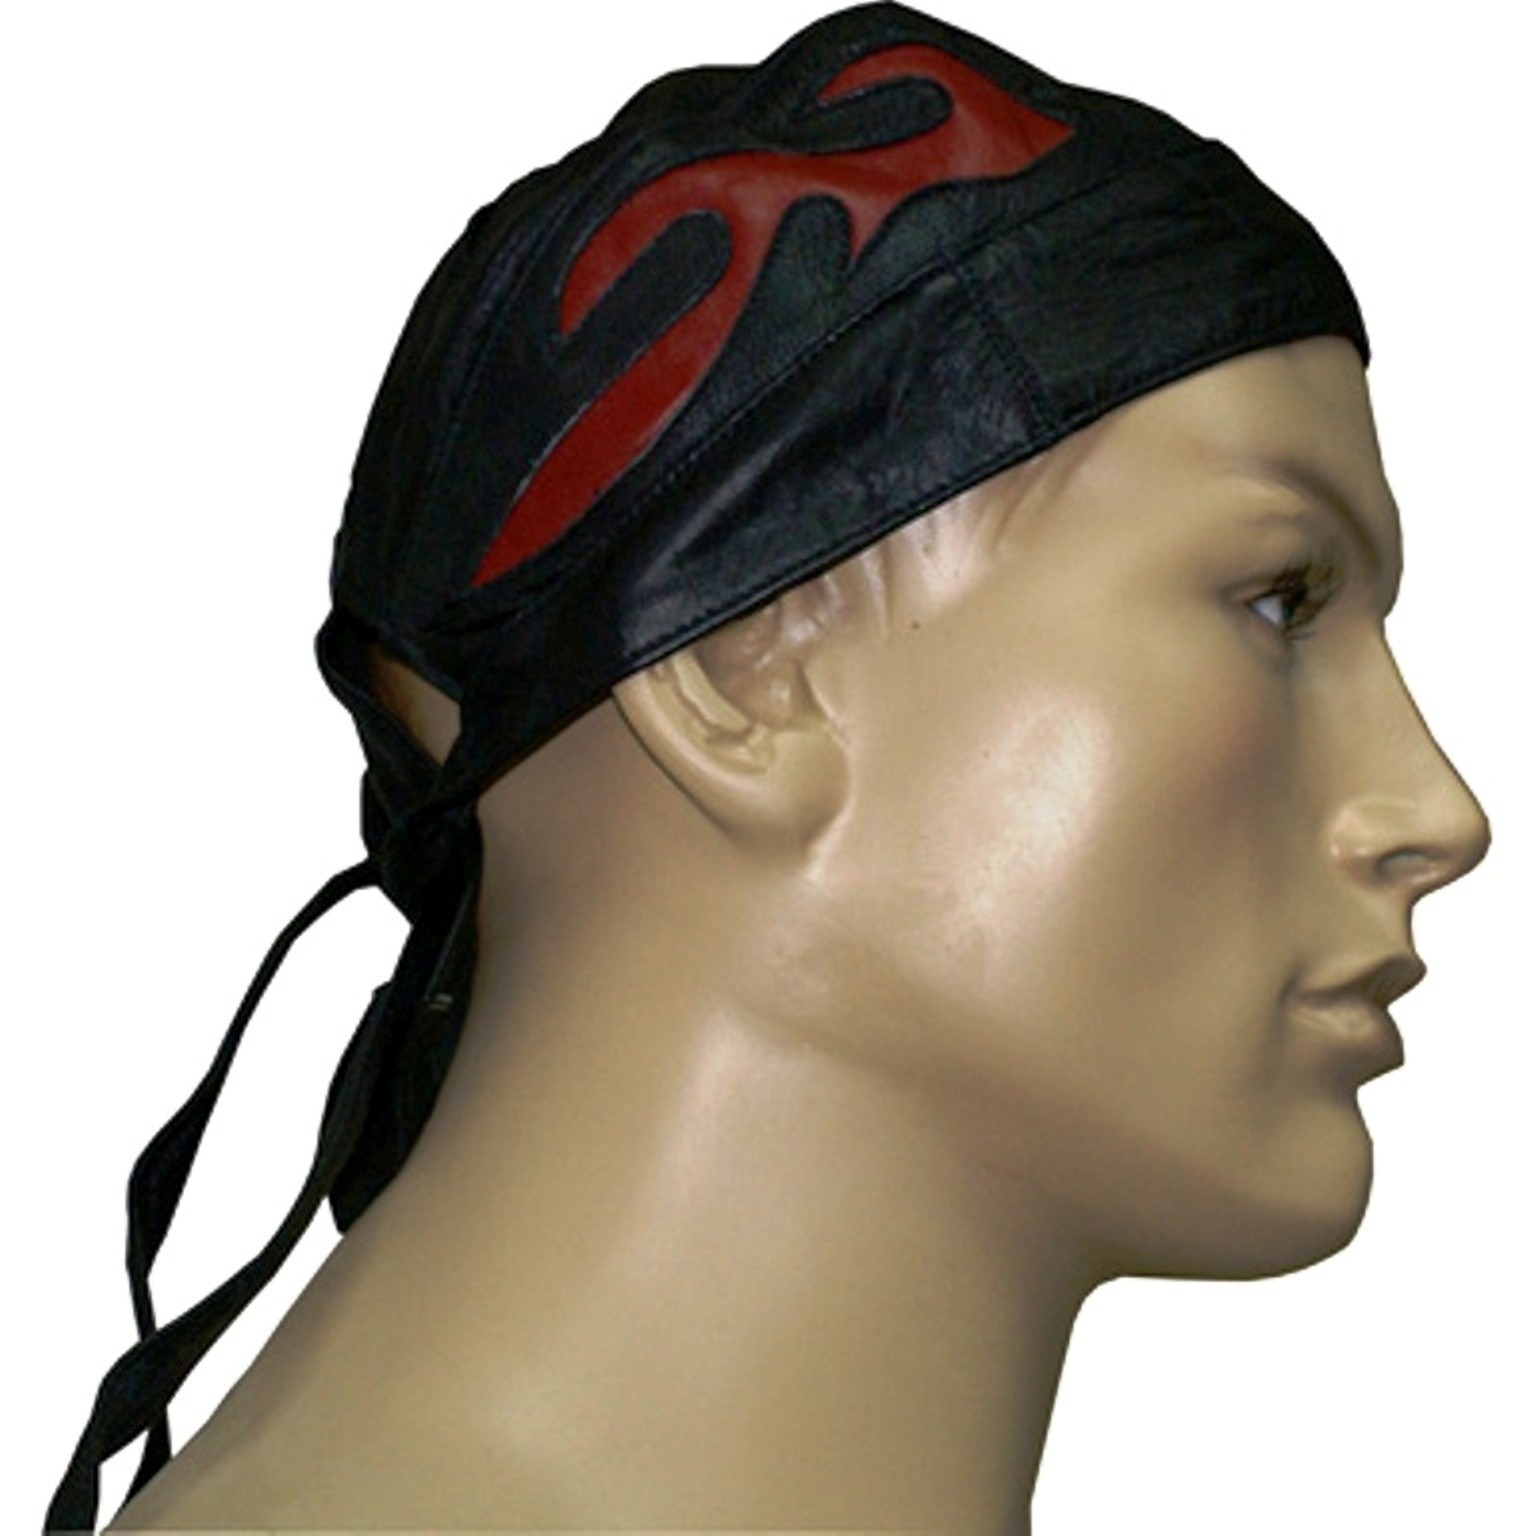 HMB-901F LEATHER BIKER SKULL CAP RED FLAMES BANDANA MOTORCYCLE DURAG HAT